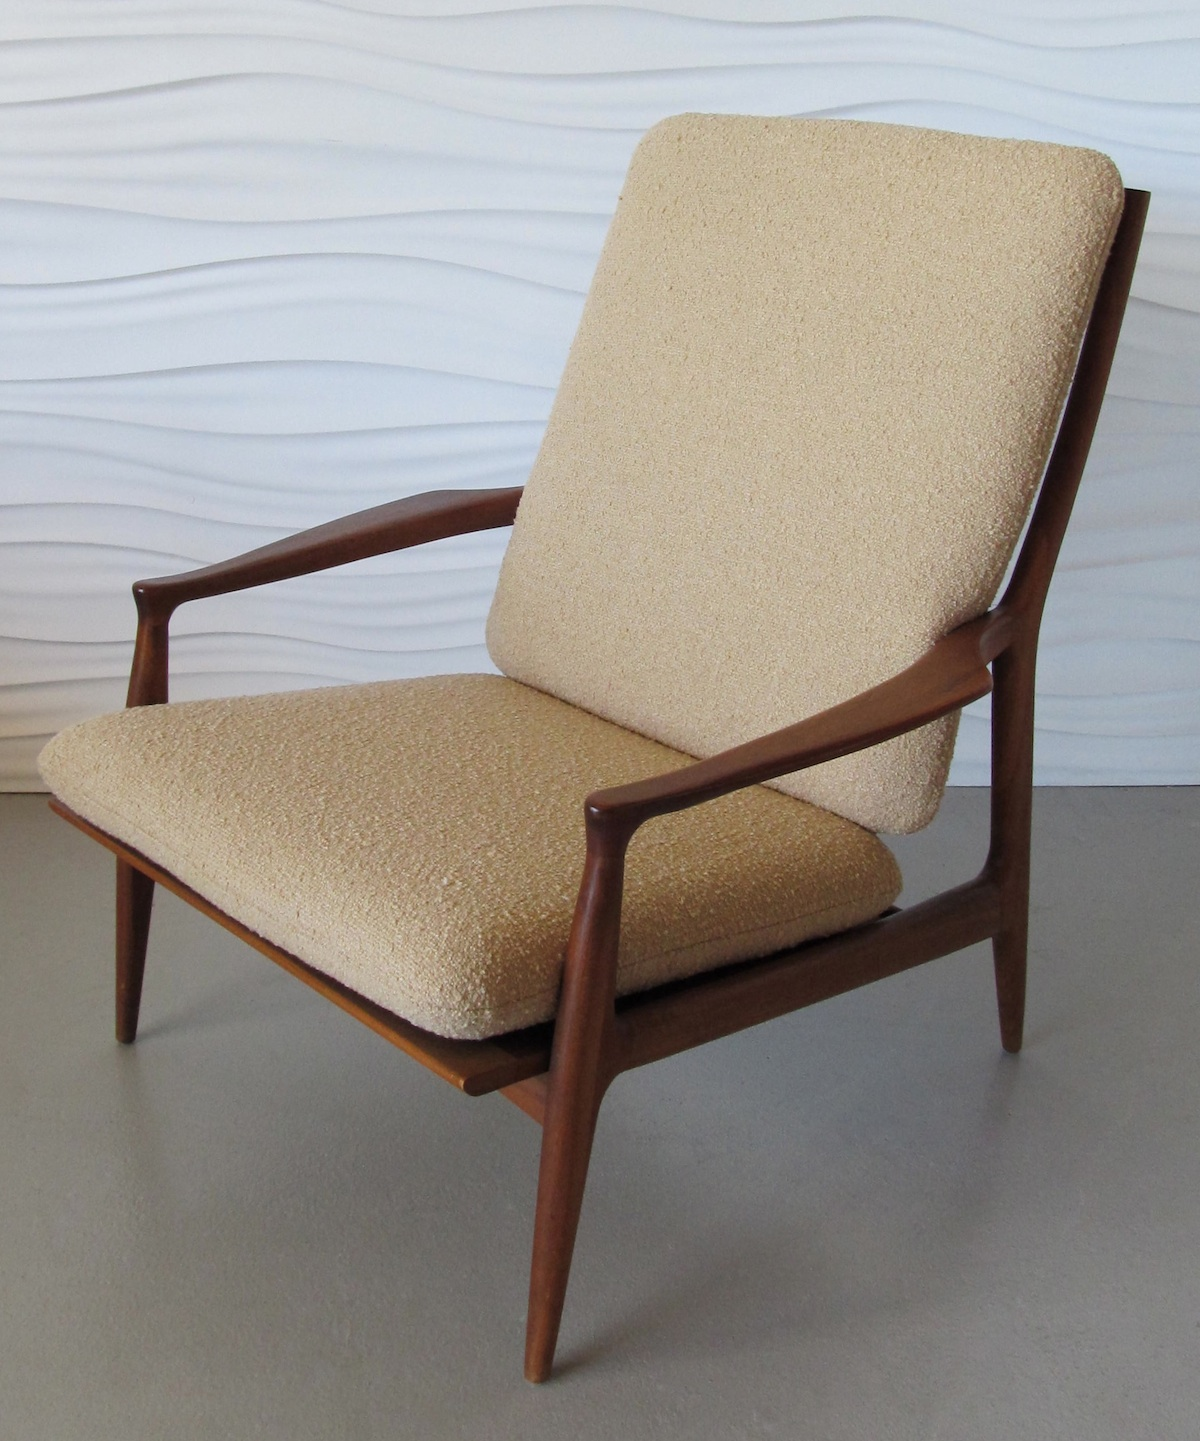 Image of: Cute Danish Lounge Chair